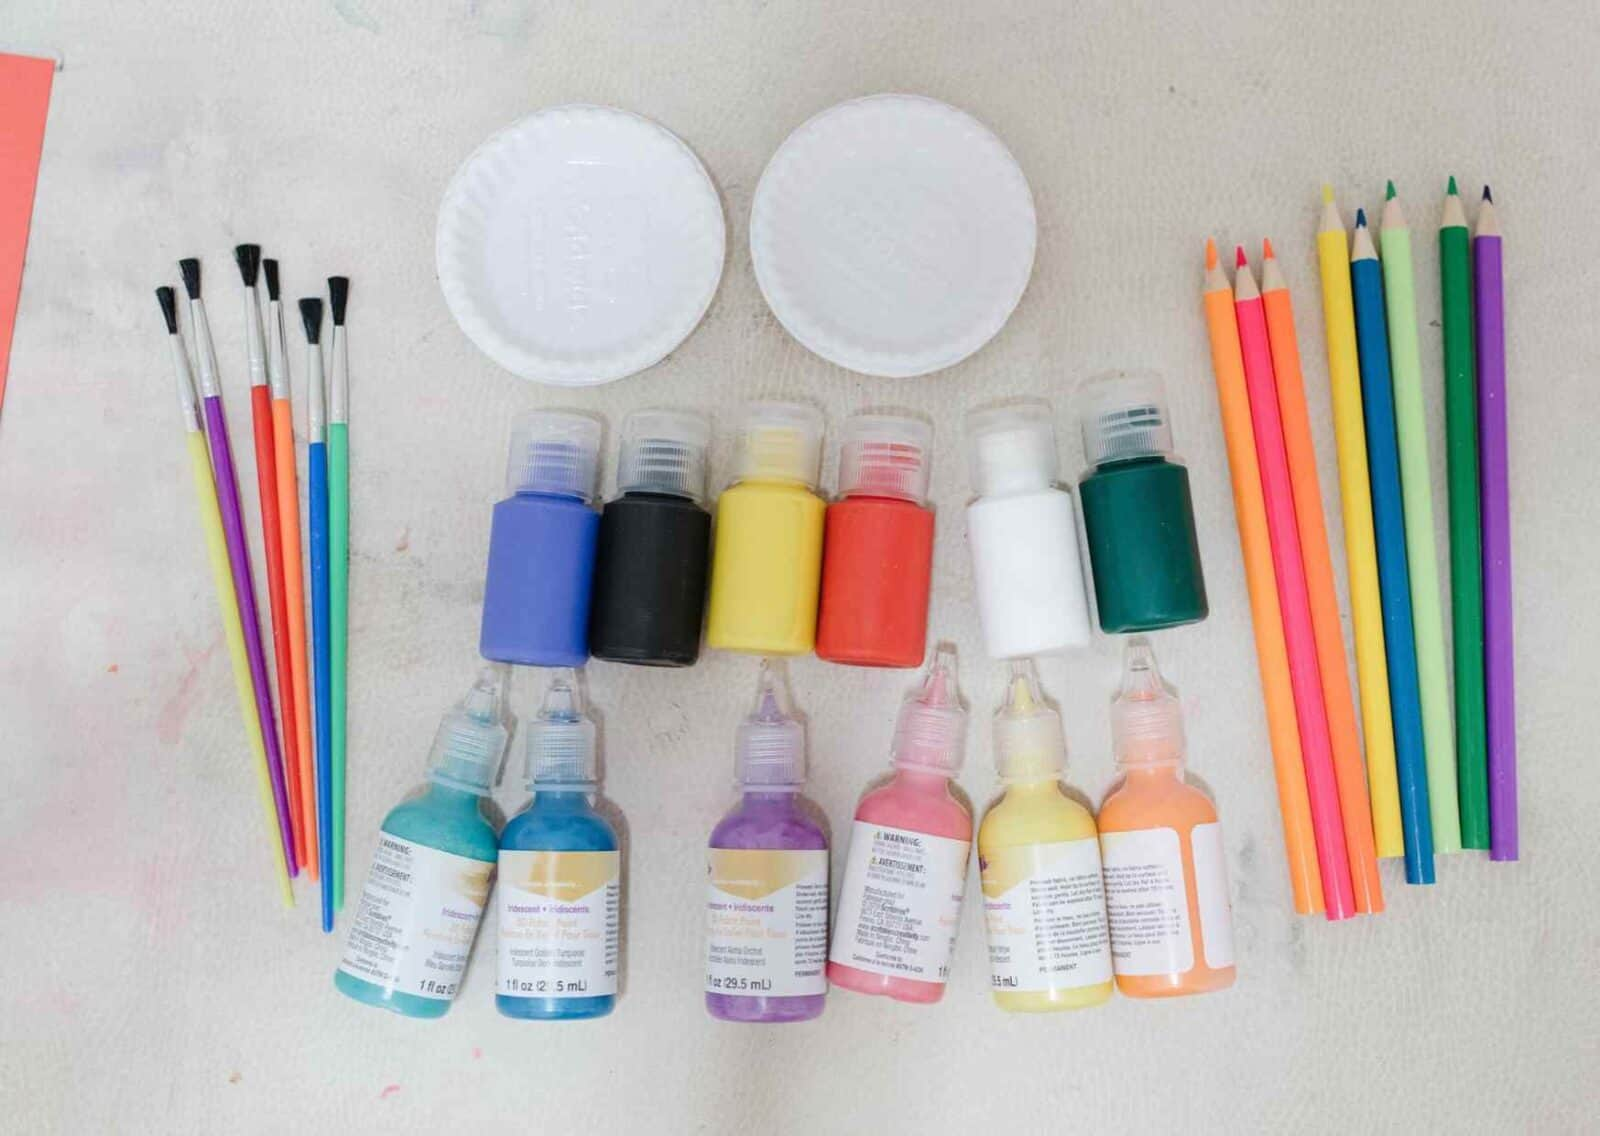 Supplies for craft project